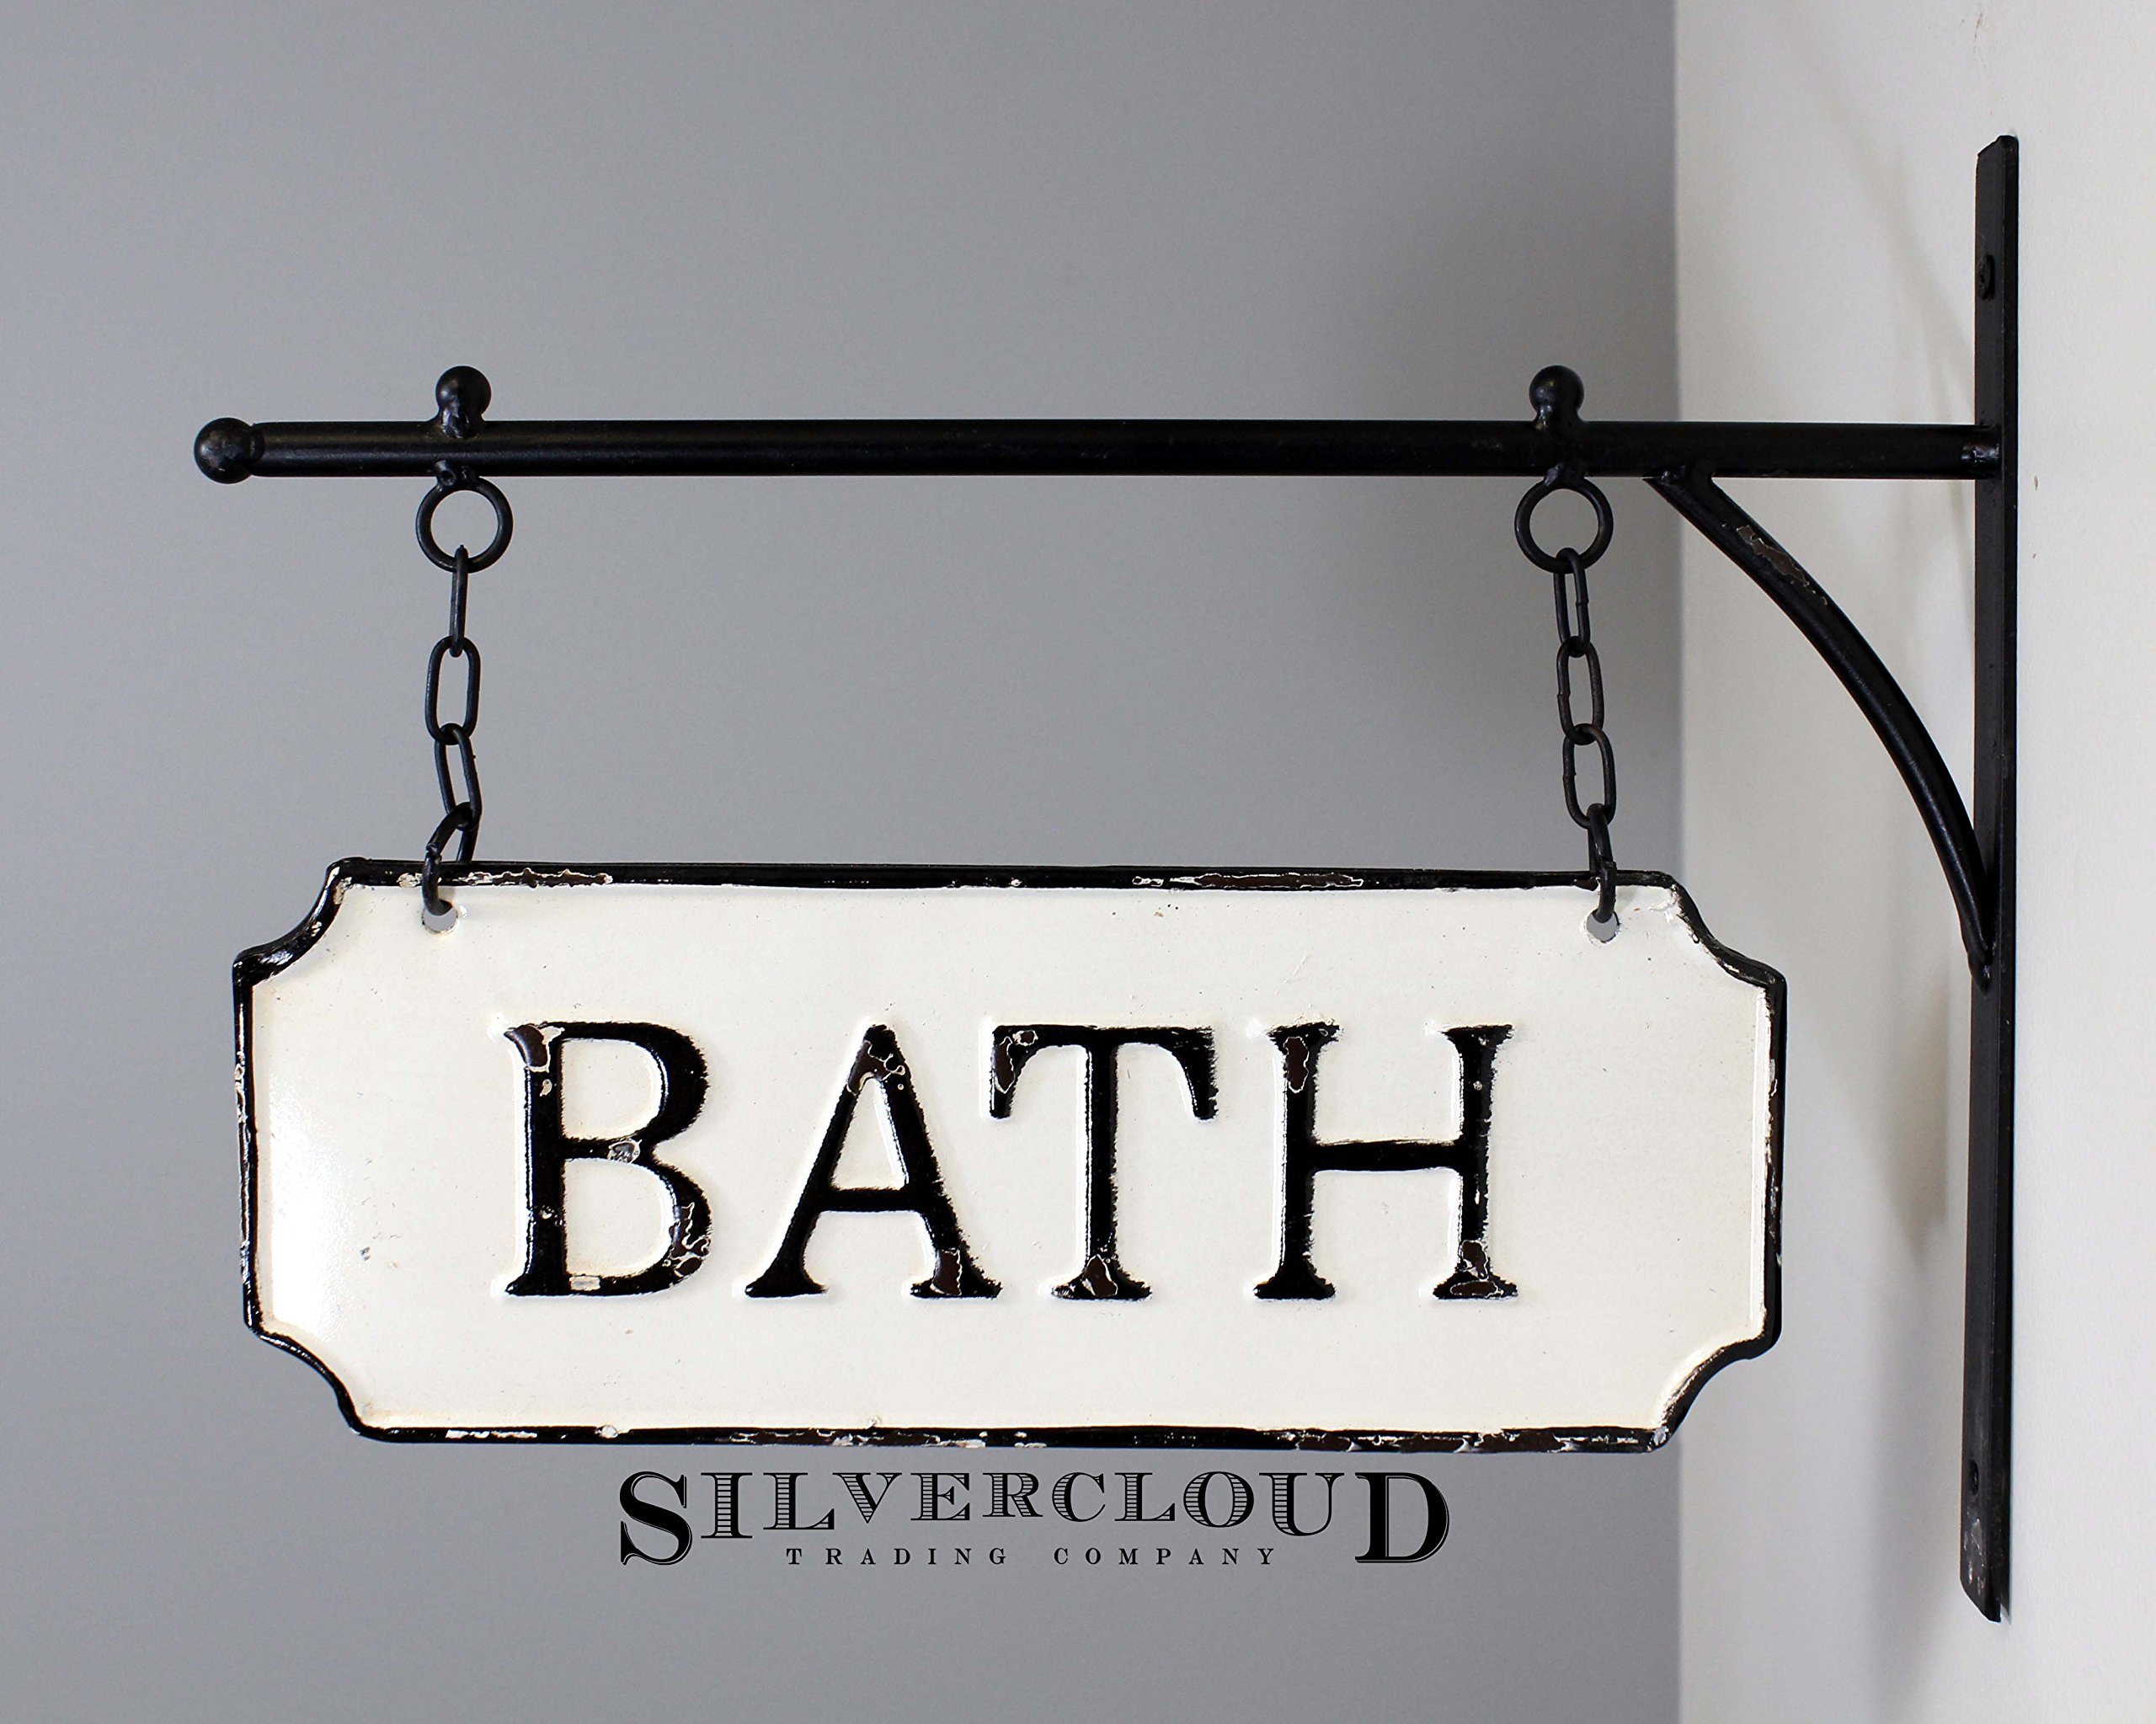 Silvercloud Trading Co. Rustic Hanging Double-Sided Bath Embossed Black on White Enamel Metal Sign with Bracket - Wall Decor - Room Label by Silvercloud Trading Co.